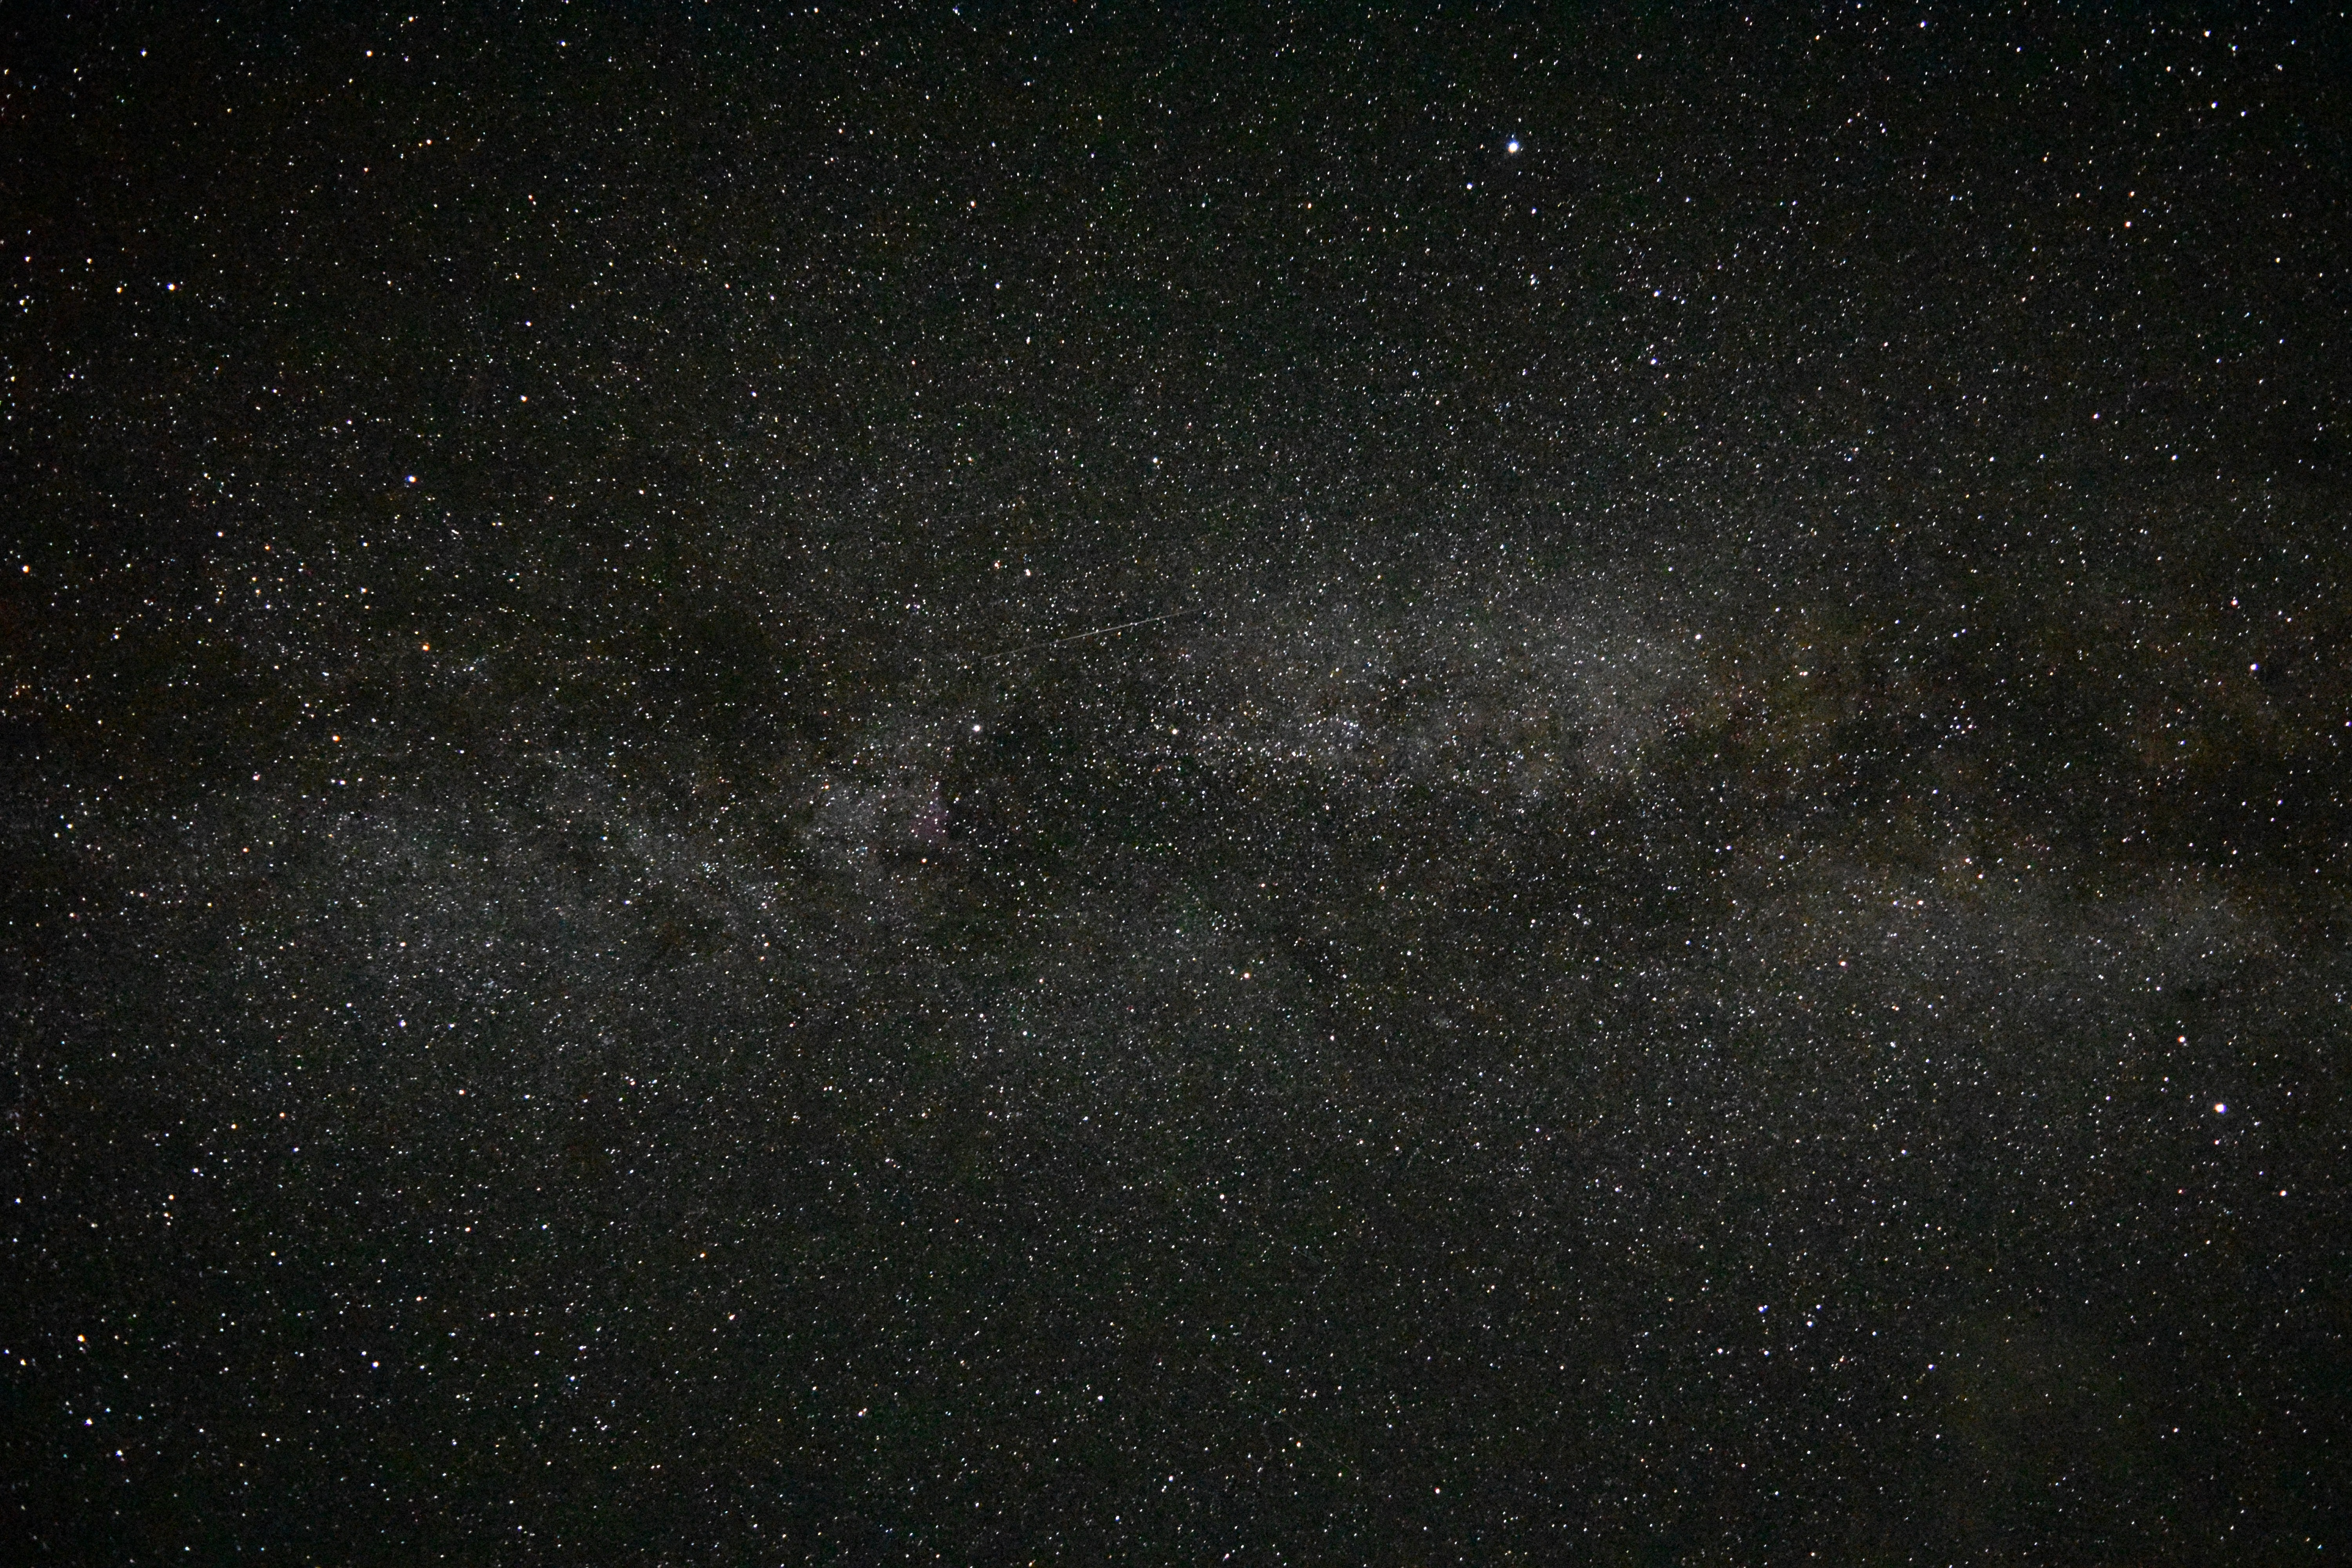 stars on sky with clouds